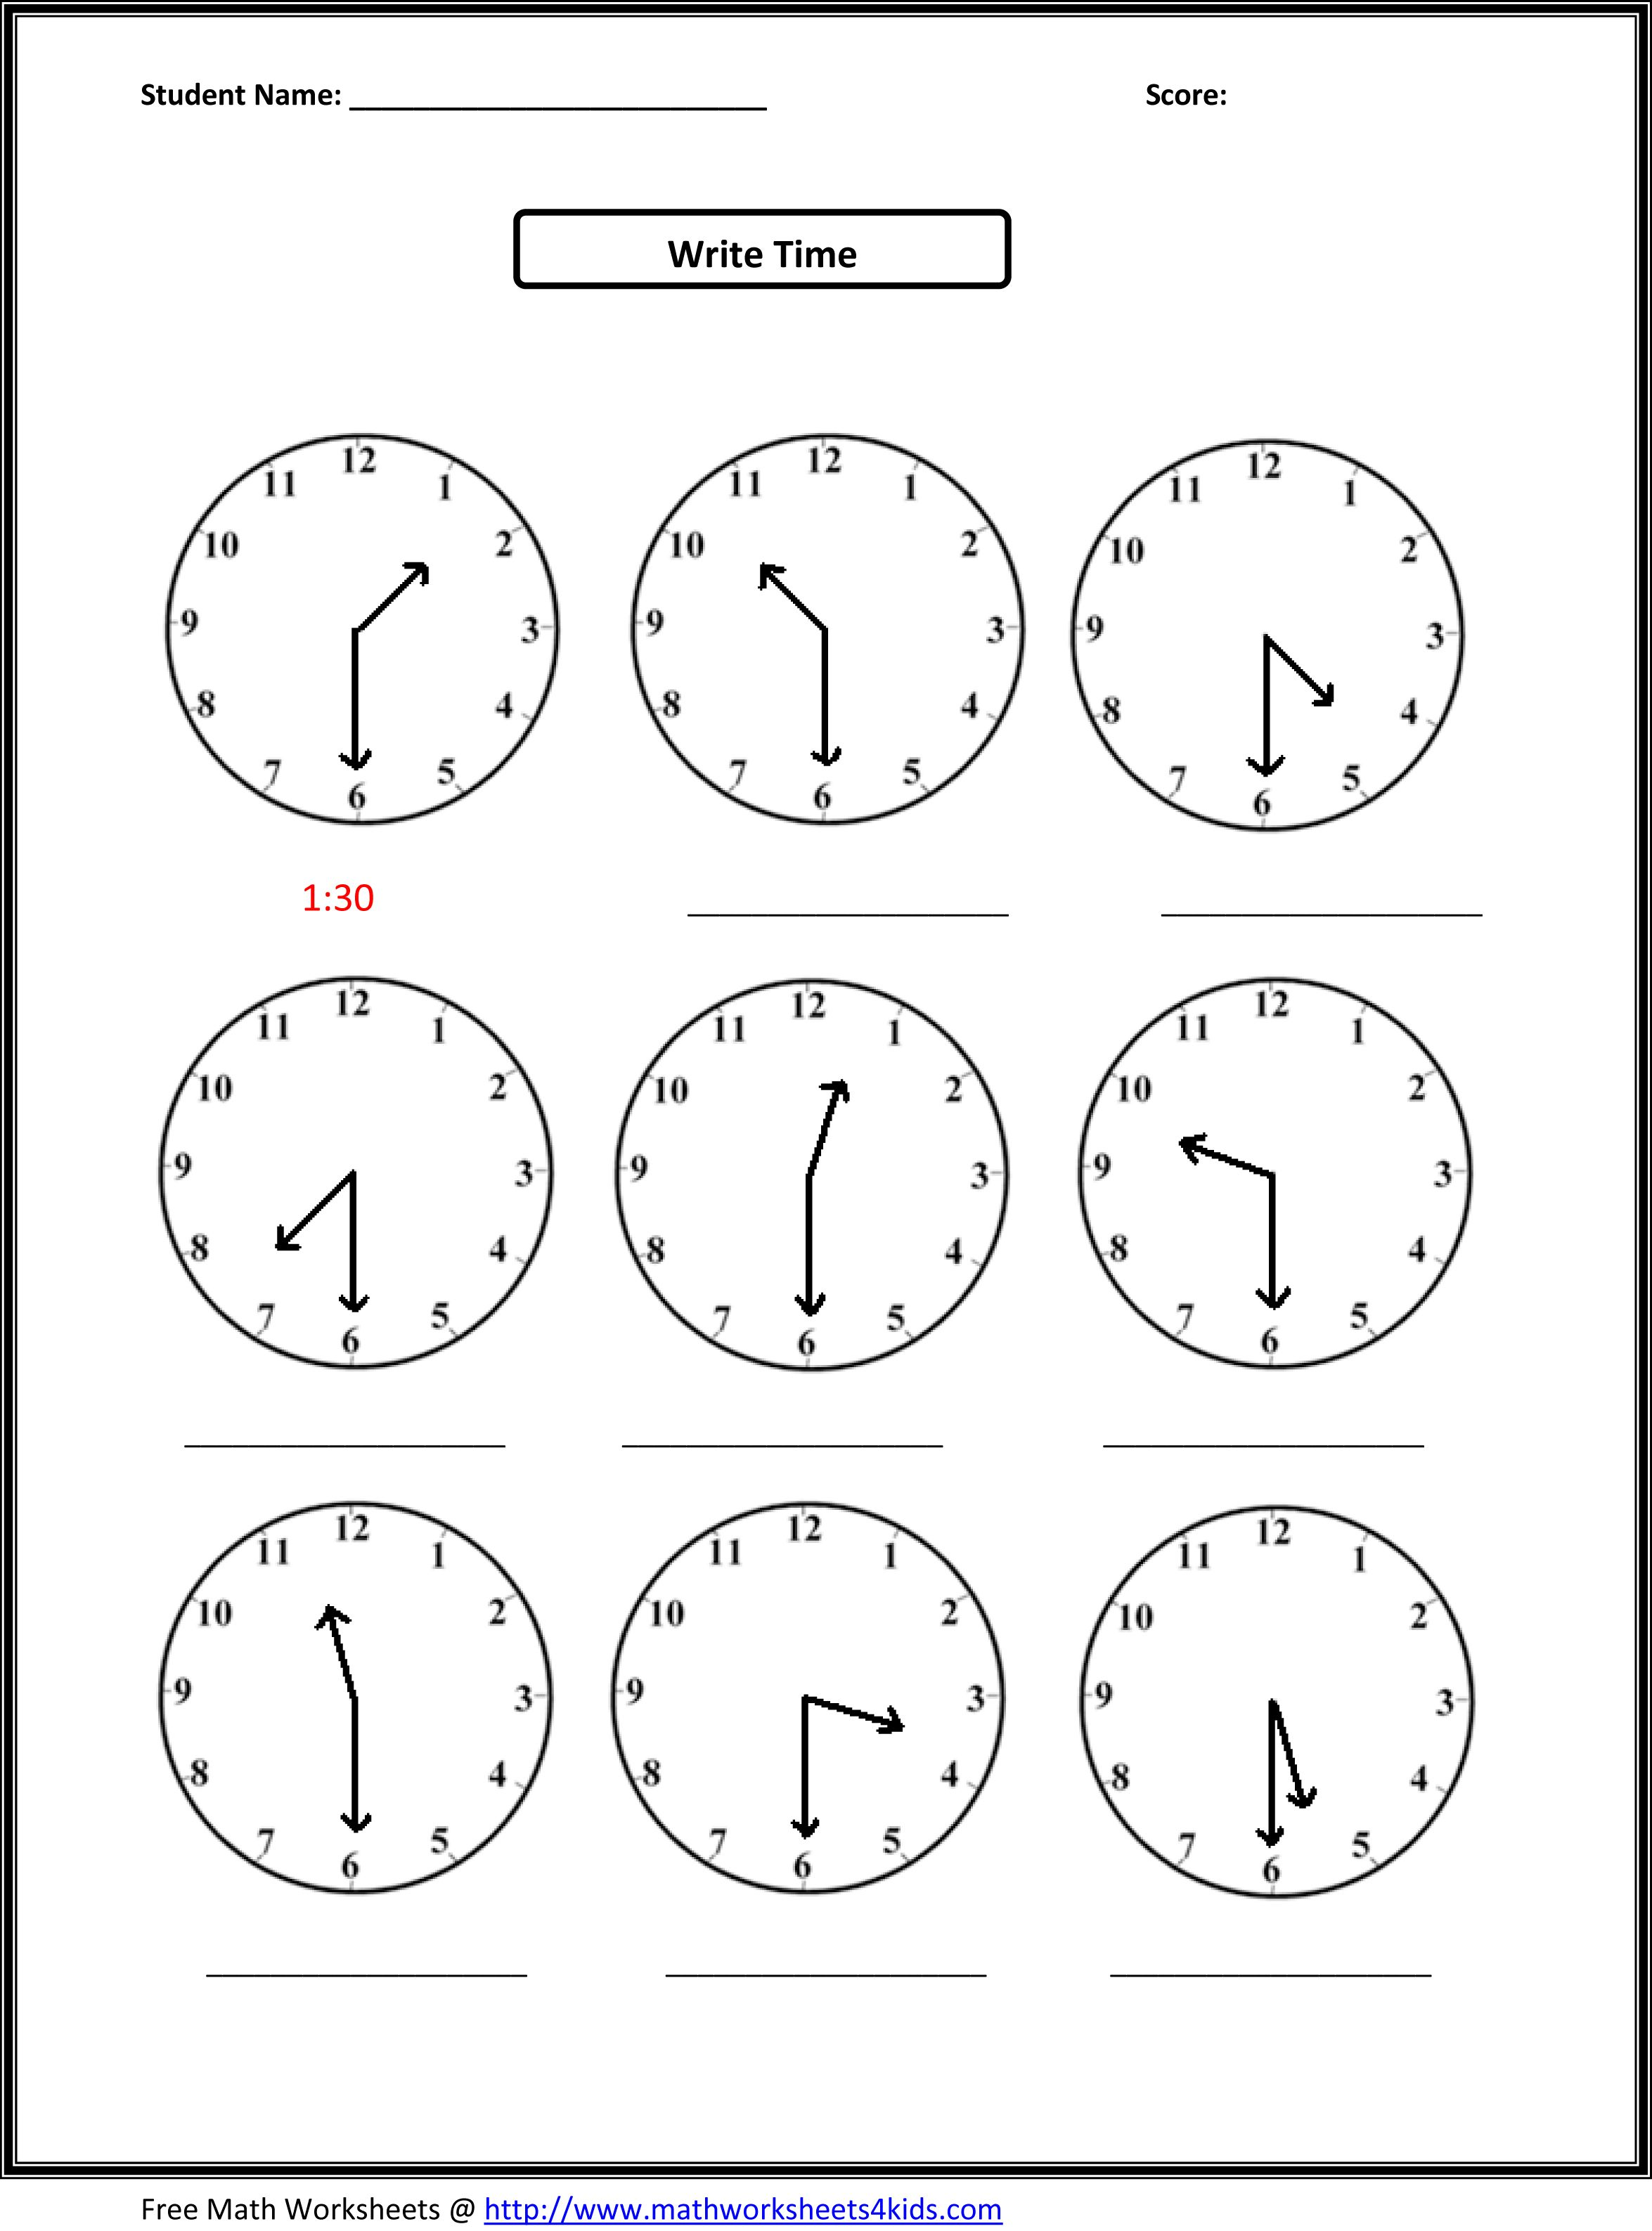 Proatmealus  Remarkable Worksheet On Time For Grade   Reocurent With Heavenly Free Printable Telling Time Worksheets Nd Grade  Reocurent With Divine English Worksheets Year  Also Worksheets On Maps In Addition Exponents Powers Of  Worksheet And Conjunction Worksheets With Answers As Well As Number Match Worksheet Additionally Grade  Reading Worksheets Free Printable From Reocurentcom With Proatmealus  Heavenly Worksheet On Time For Grade   Reocurent With Divine Free Printable Telling Time Worksheets Nd Grade  Reocurent And Remarkable English Worksheets Year  Also Worksheets On Maps In Addition Exponents Powers Of  Worksheet From Reocurentcom